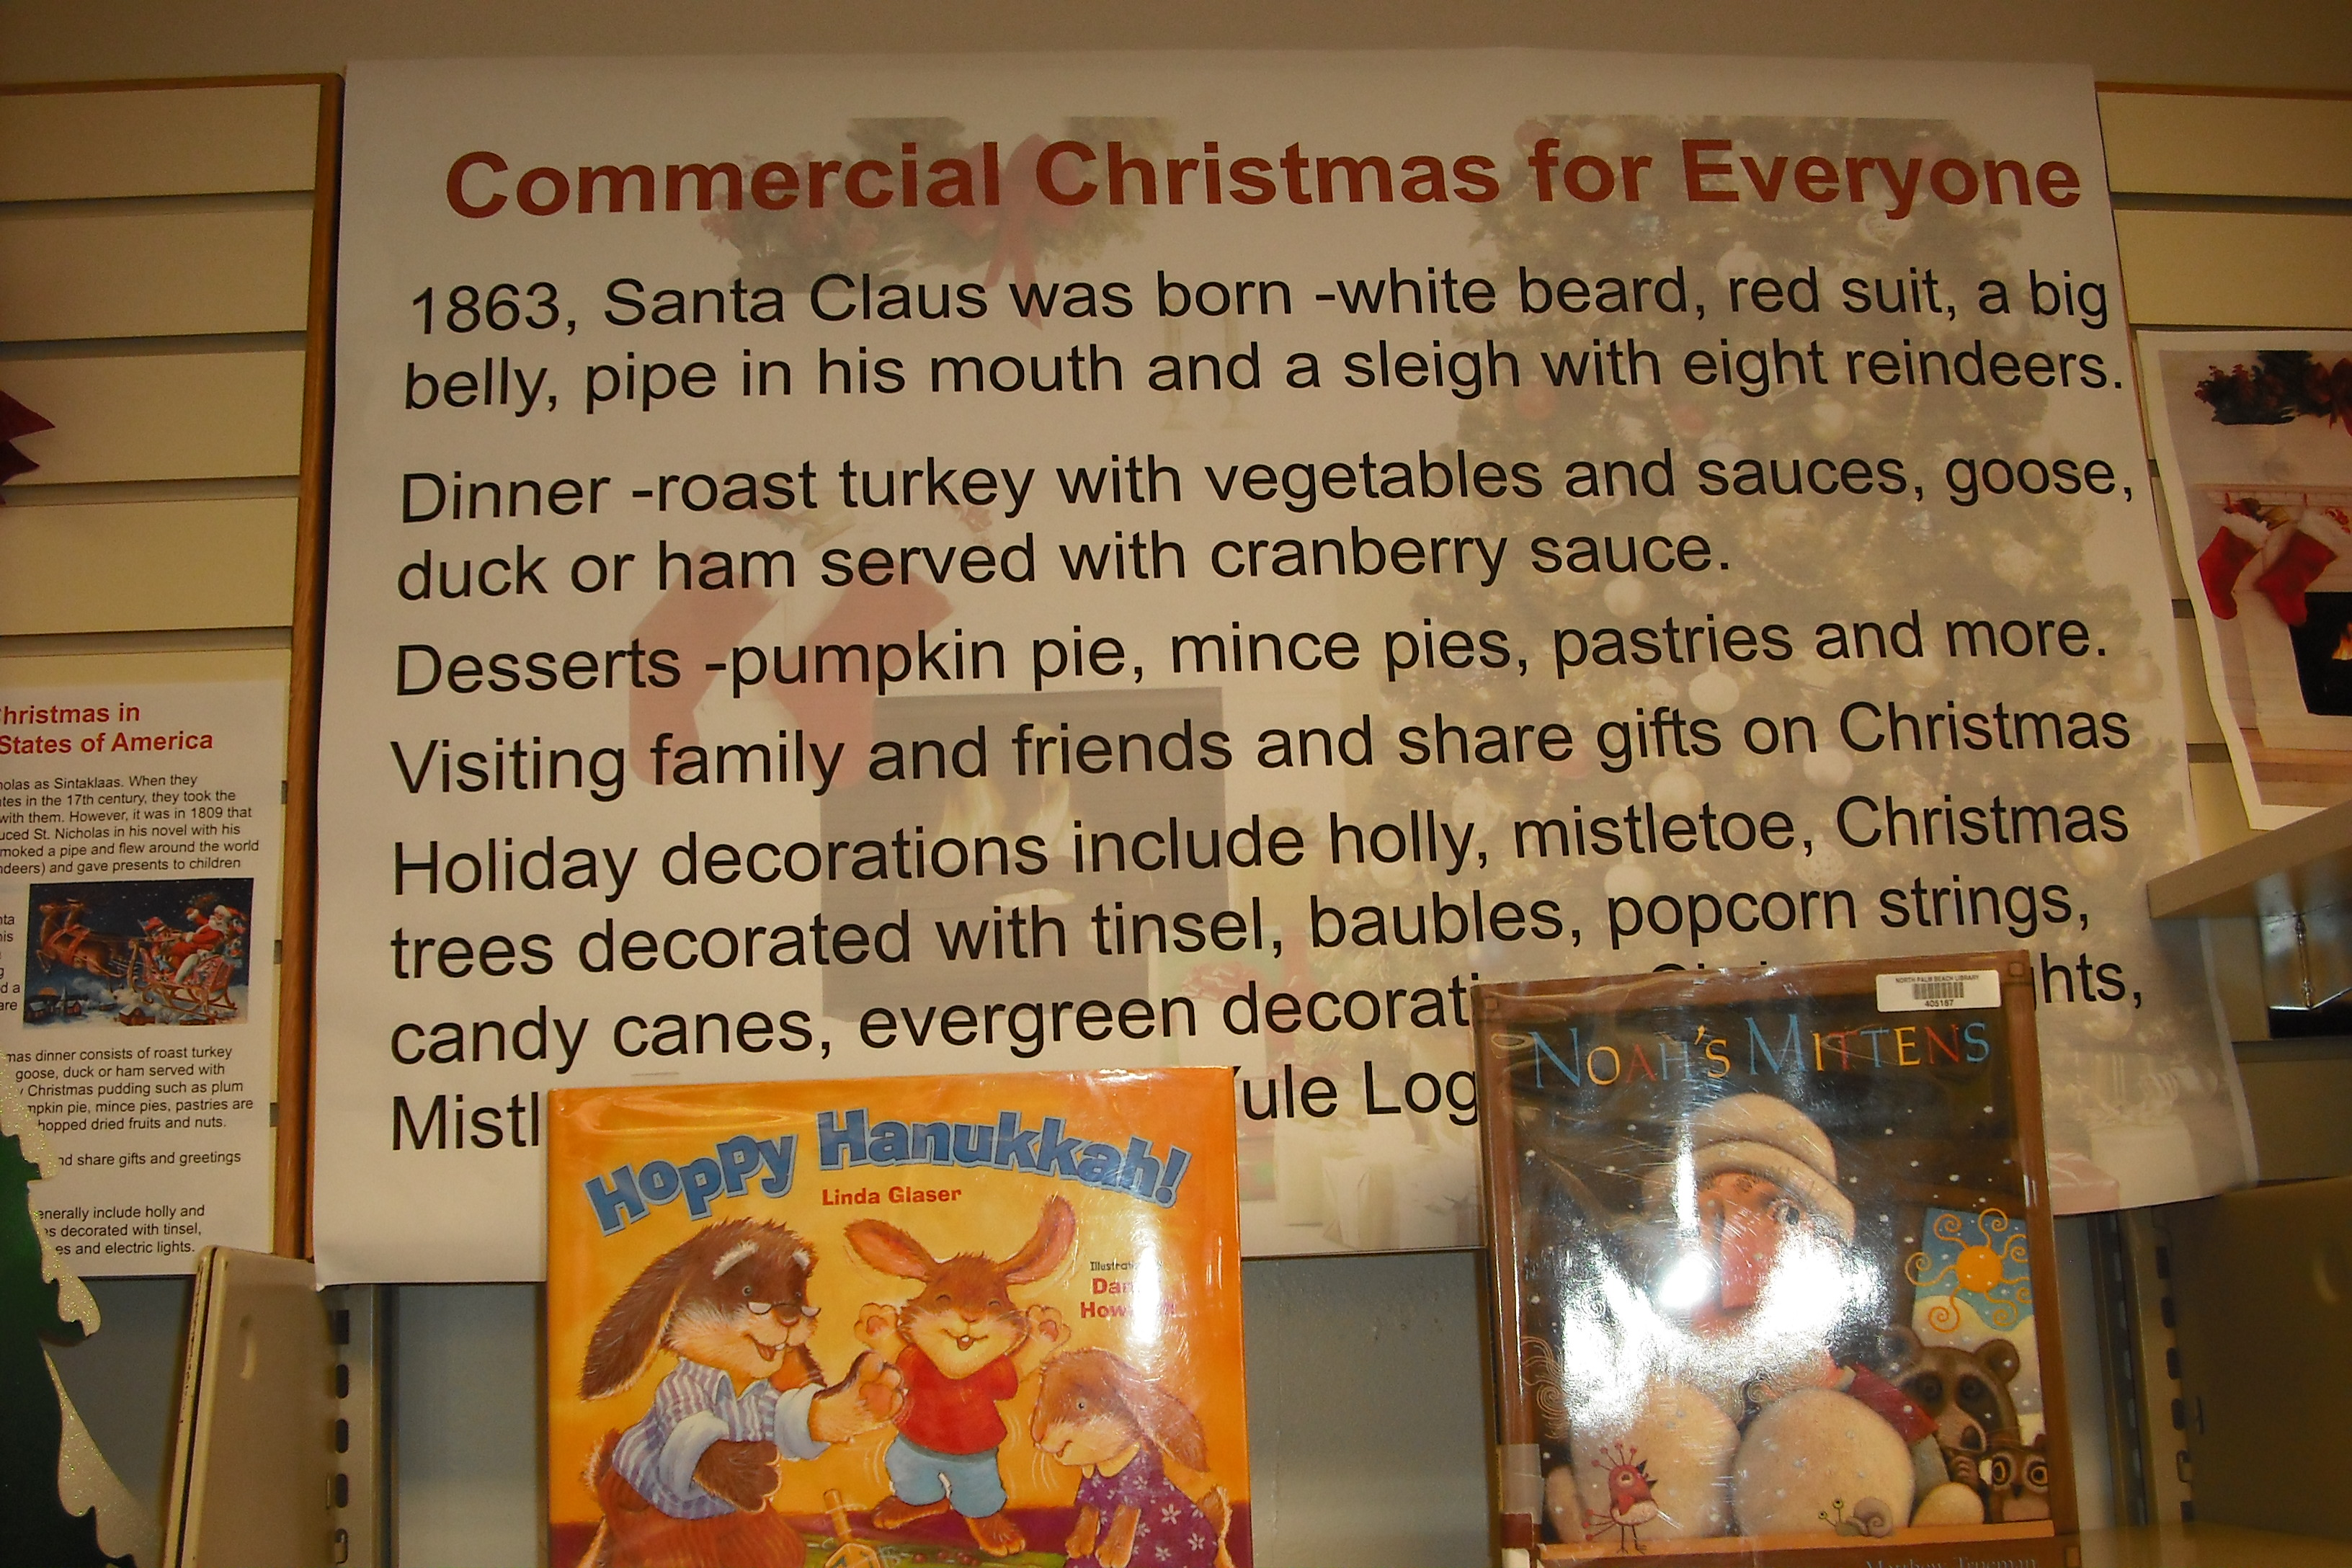 A poster with information describing the commercial Christmas holiday